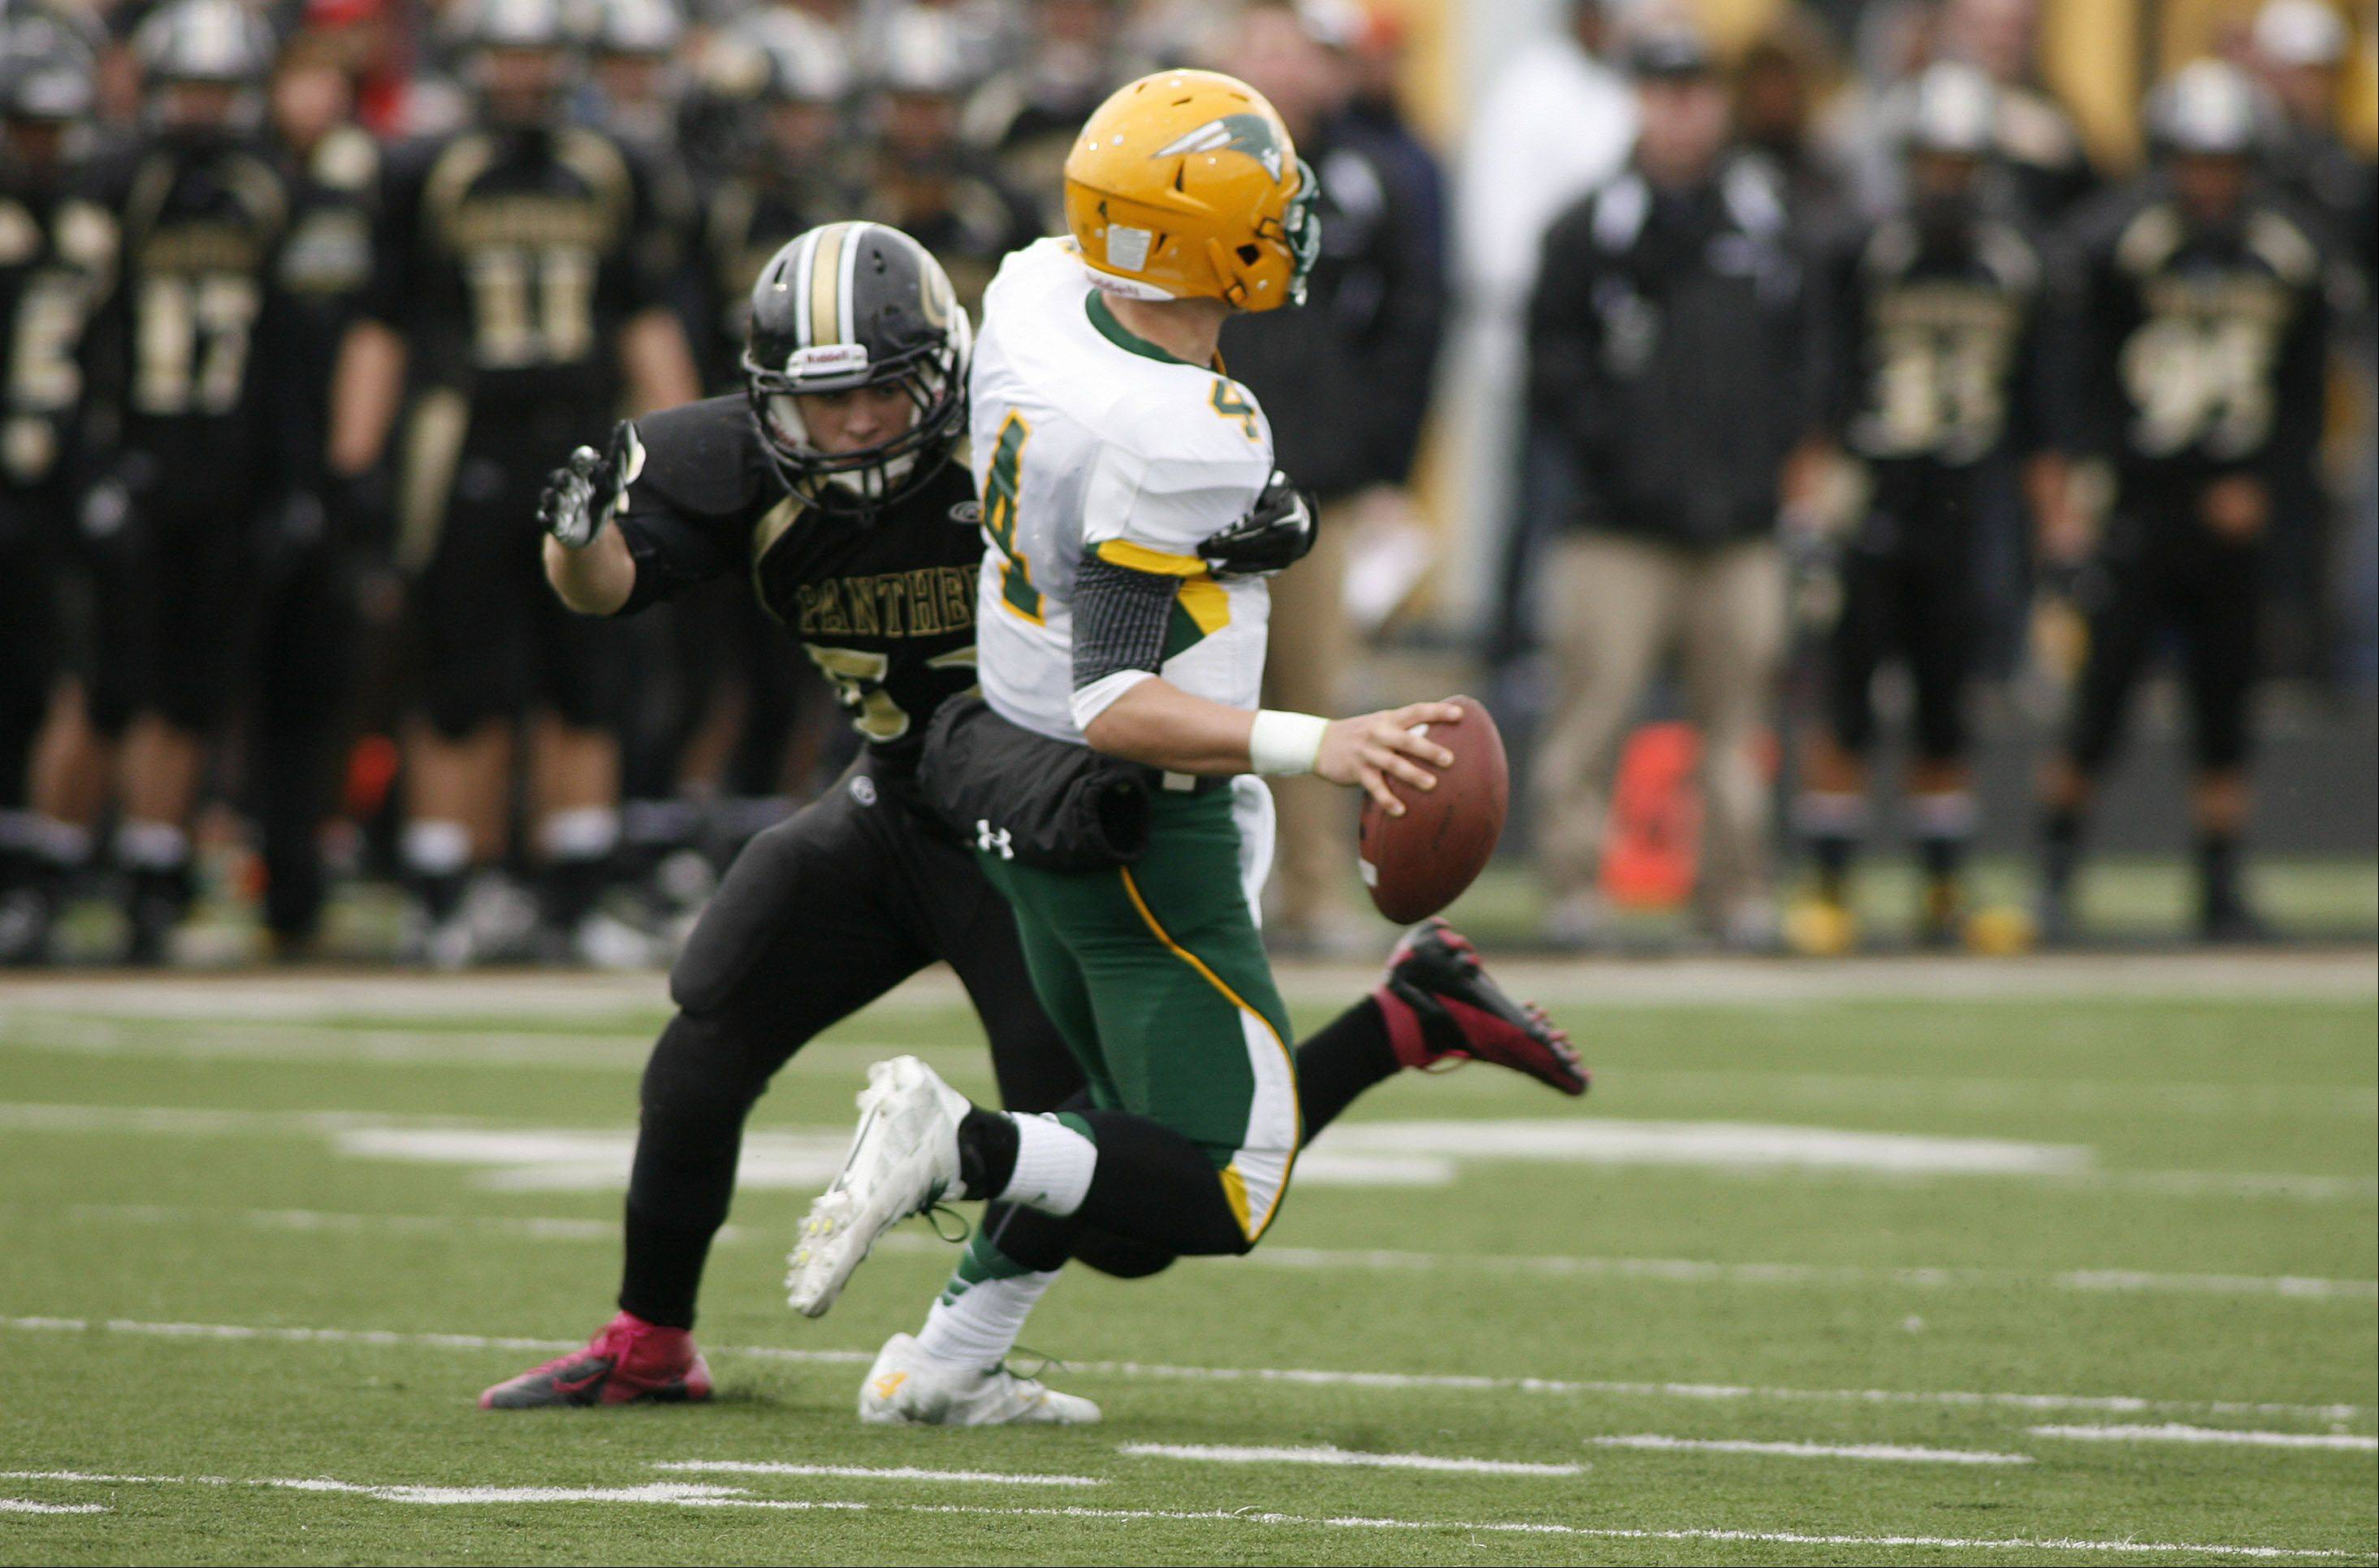 Glenbard North hosted Stevenson Saturday afternoon for IHSA round 2 playoff football in Carol Stream.